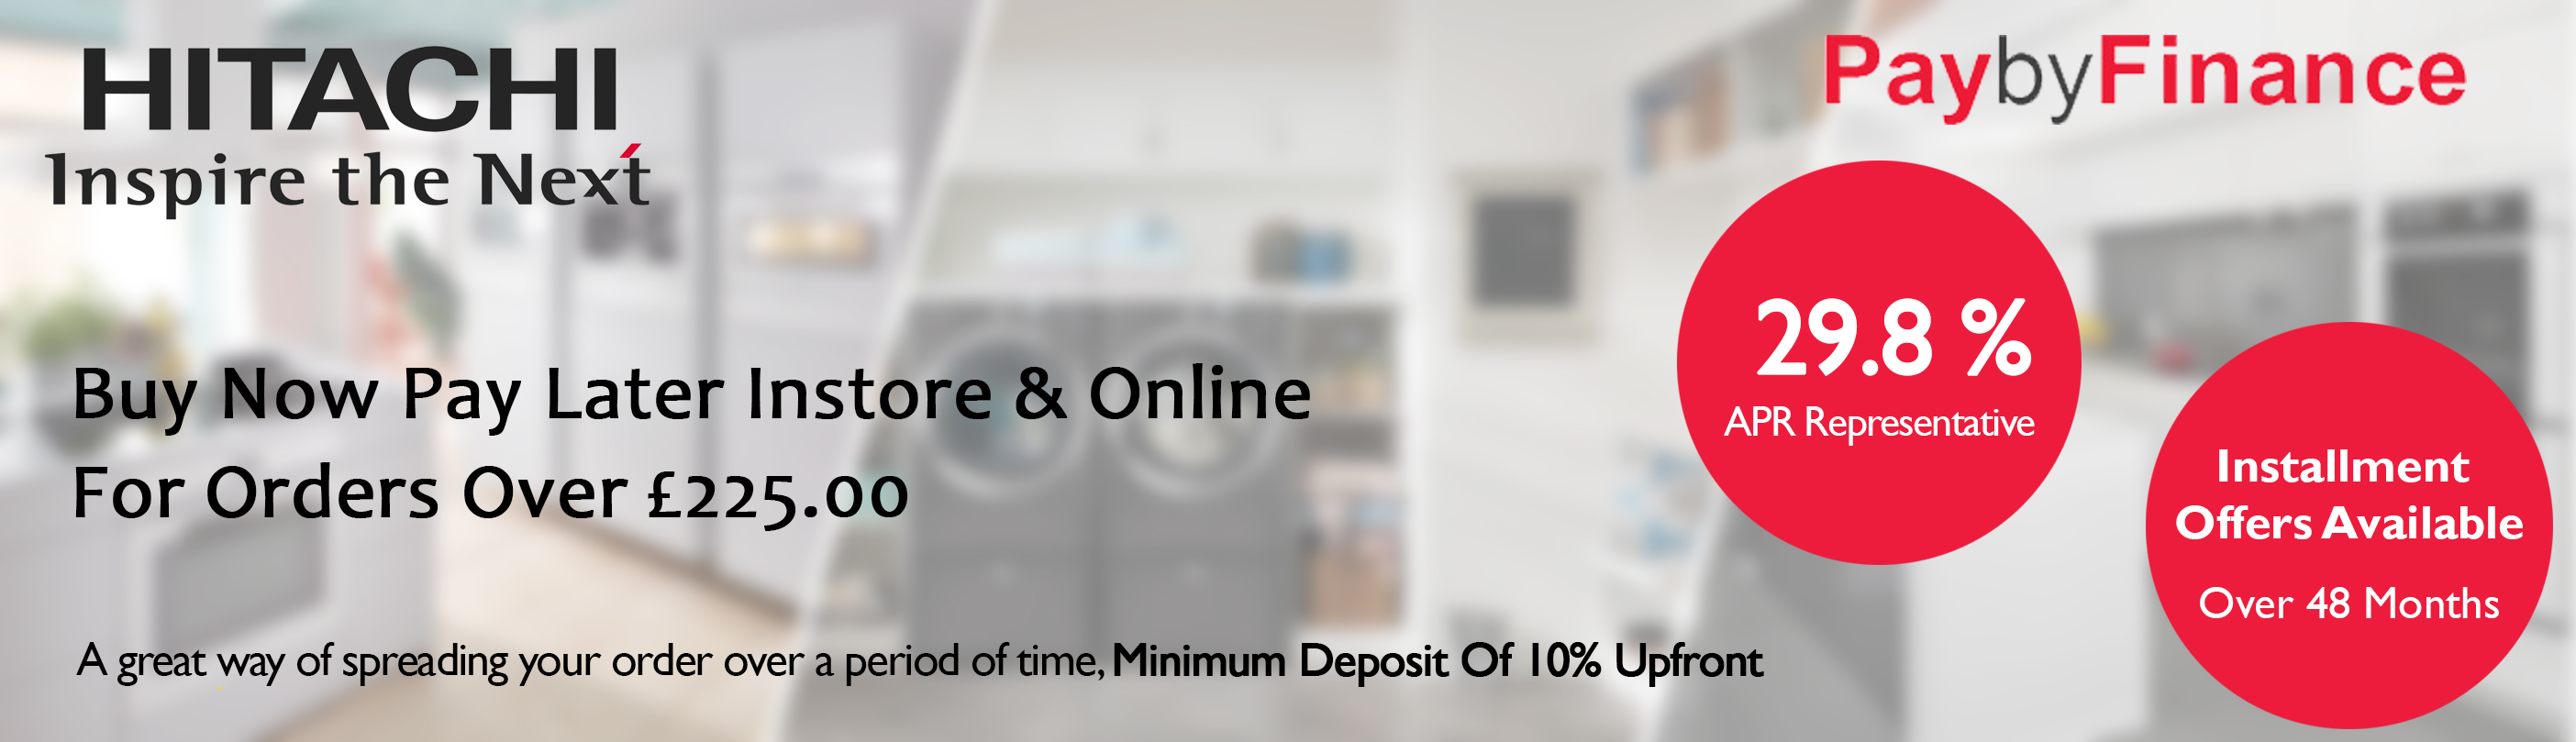 Finance options from Home Appliance Store